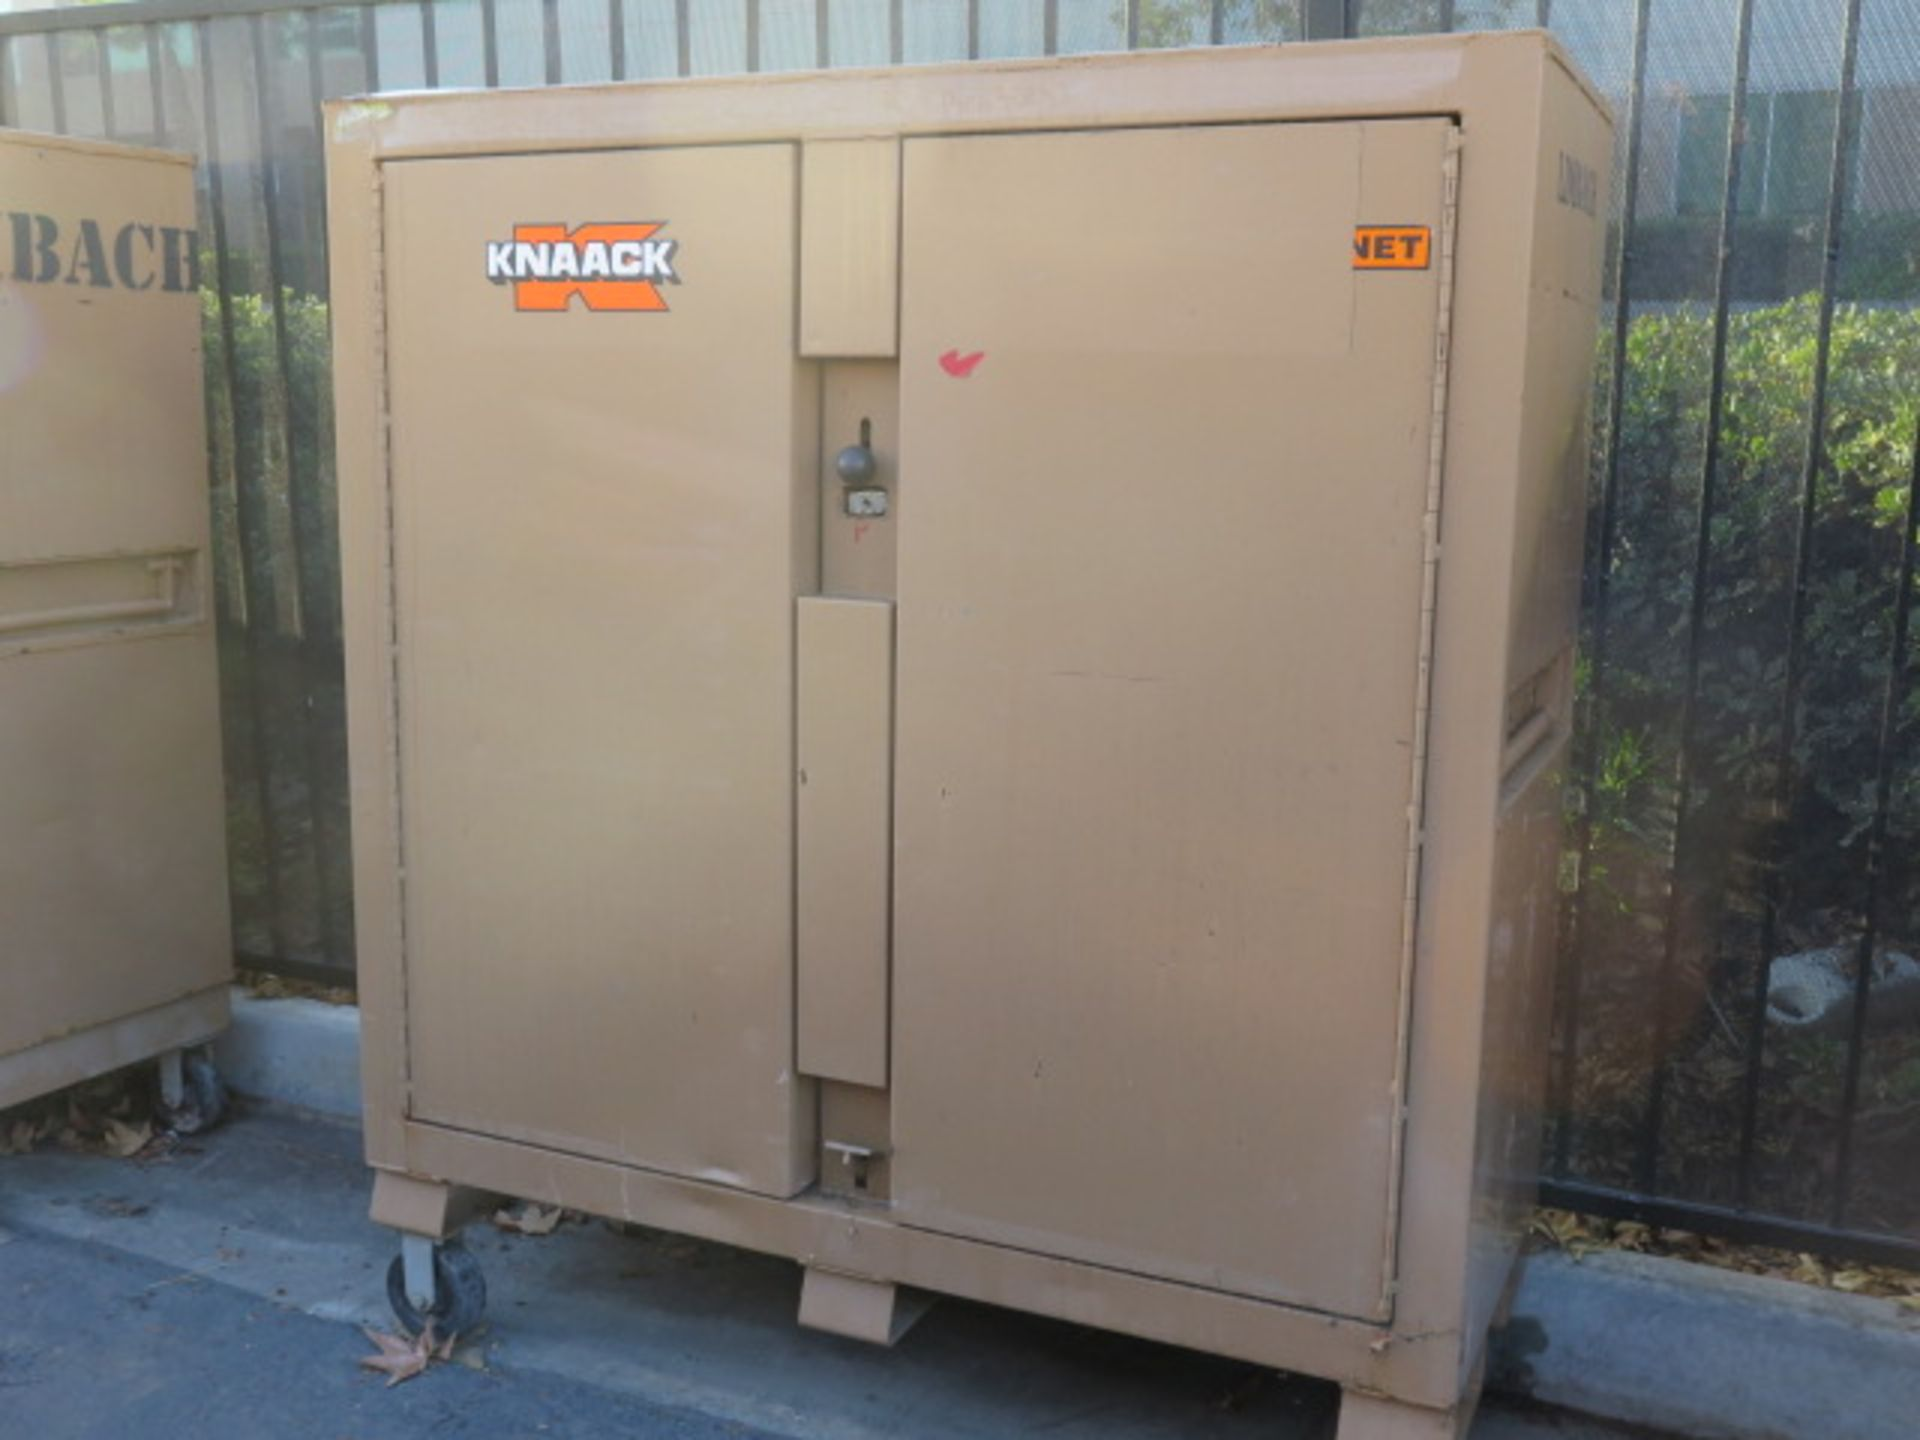 Knaack 109 Jobmaster Rolling Job Box w/ Safety Supplies (SOLD AS-IS - NO WARRANTY) - Image 2 of 19